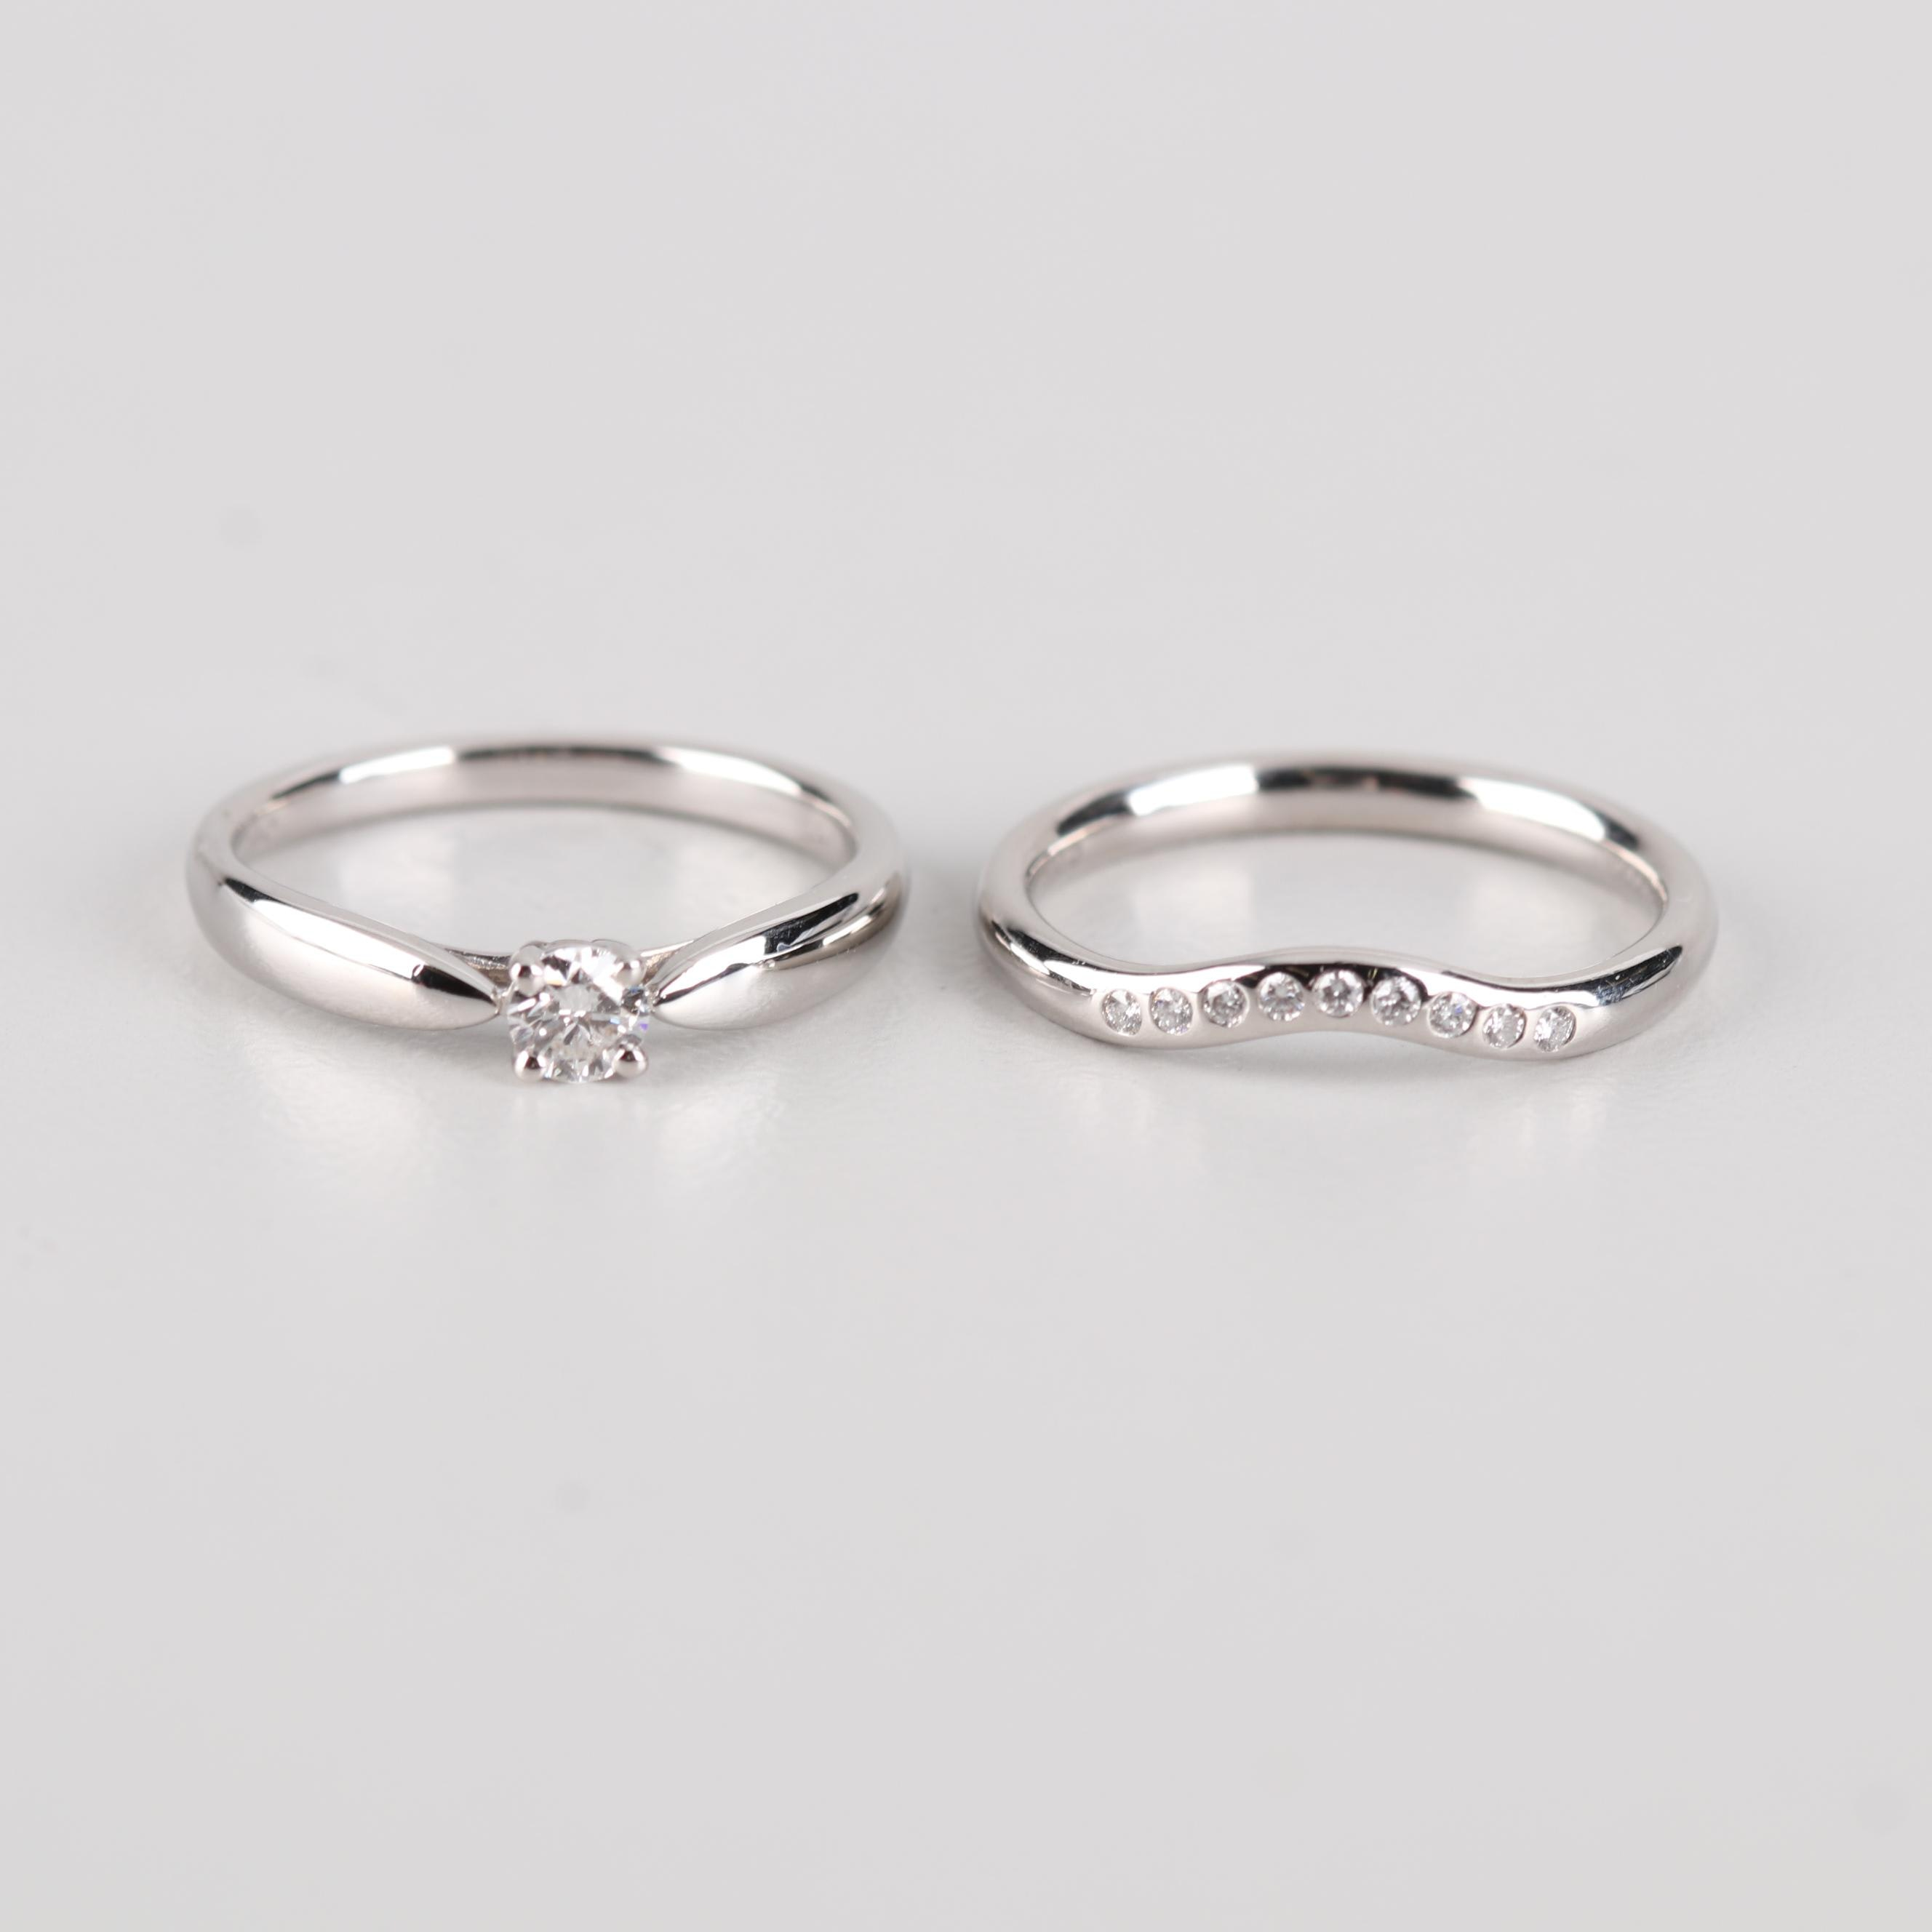 Tiffany & Co. Platinum Bridal Set